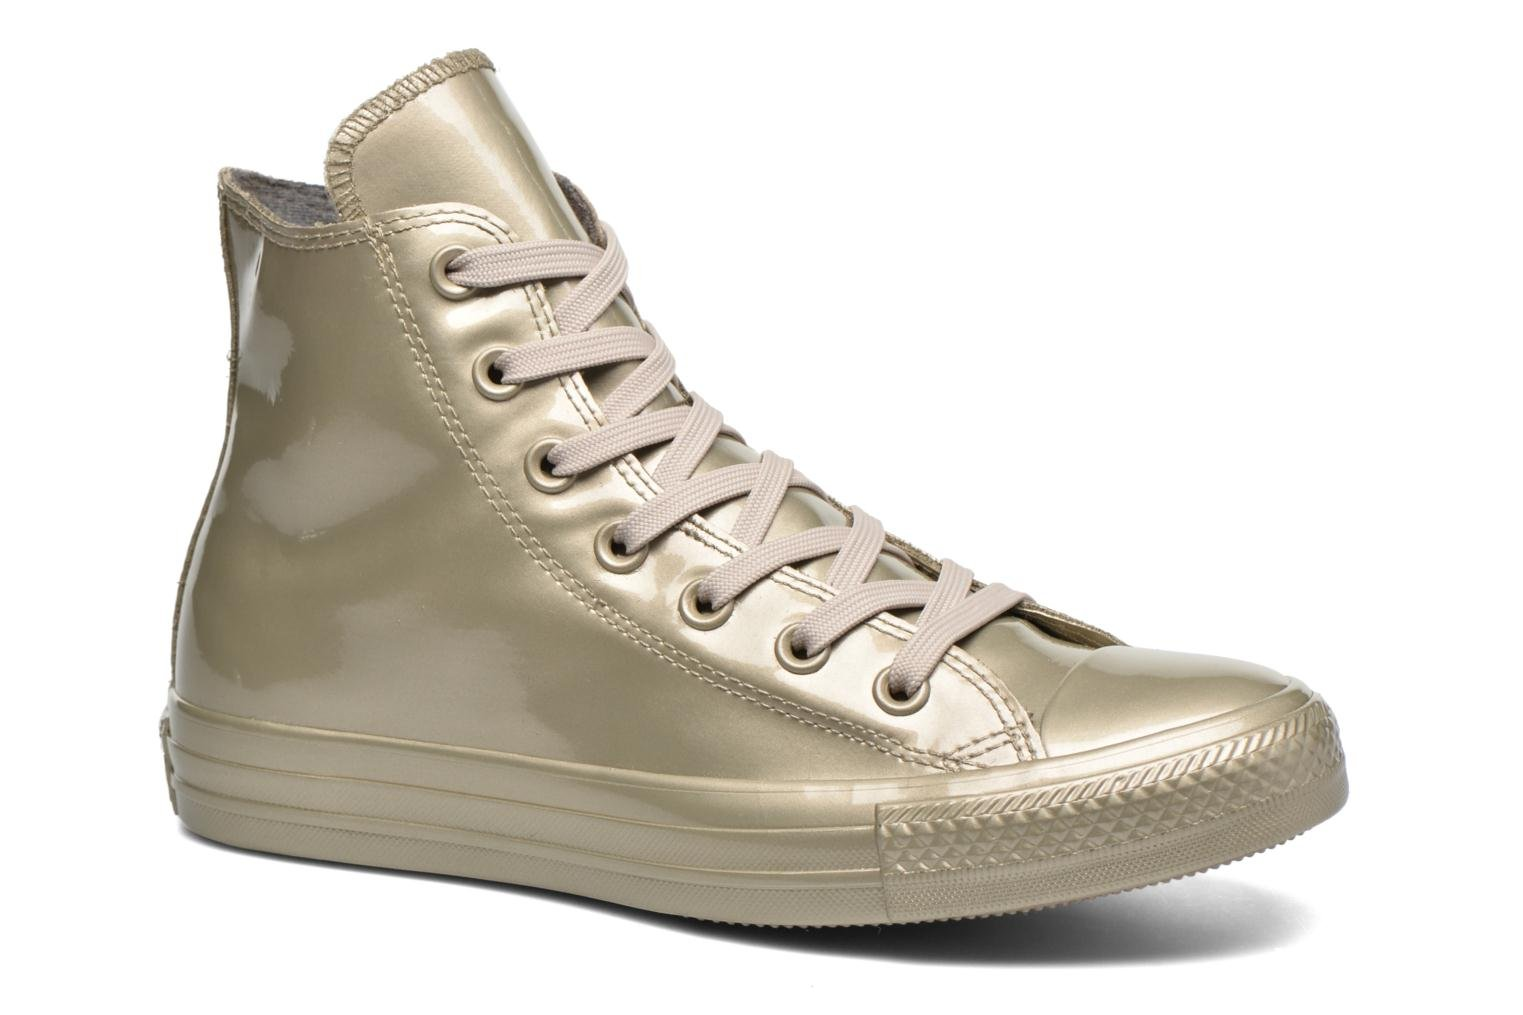 Ctas Metallic Rubber Hi W Light Gold/Gold